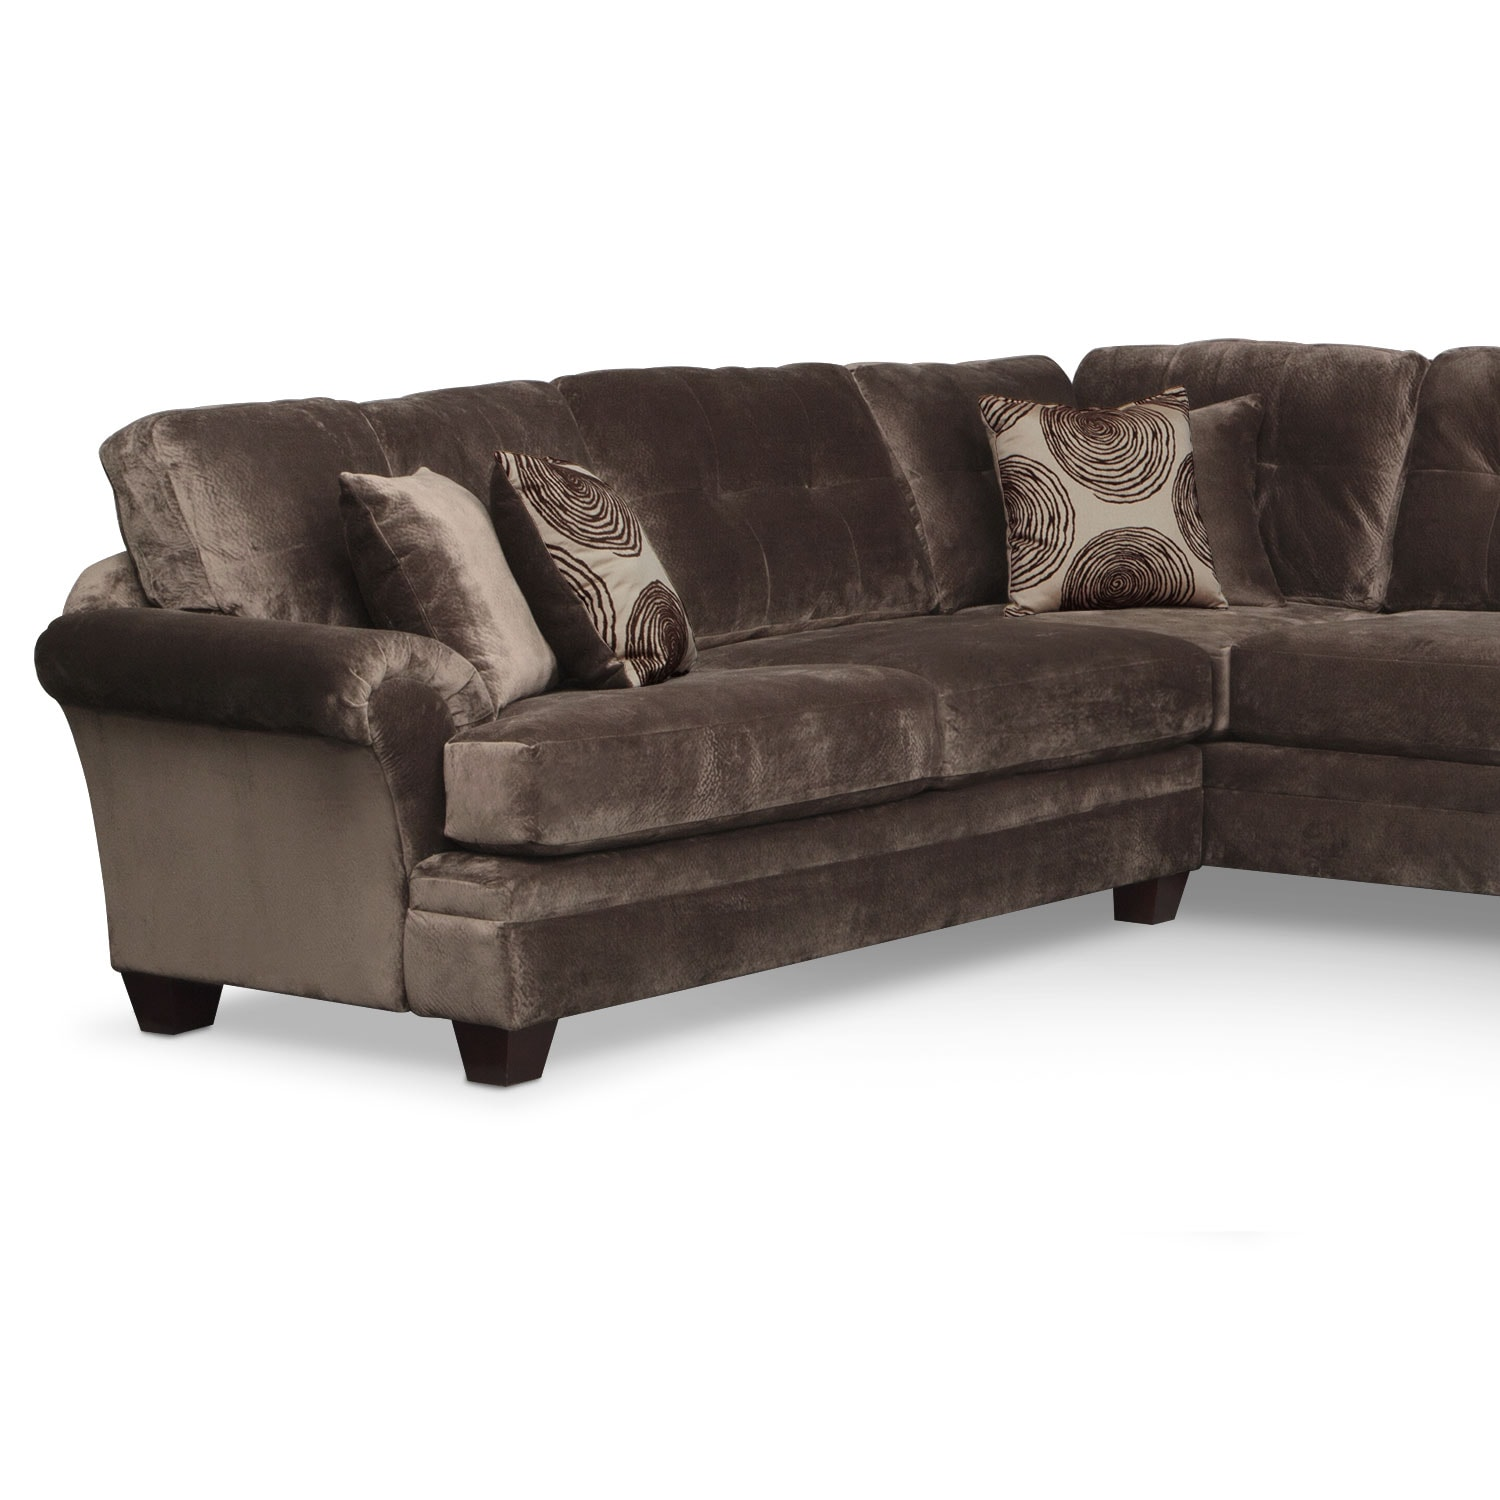 Living room furniture cordoba 2 pc sectional - Click To Change Image